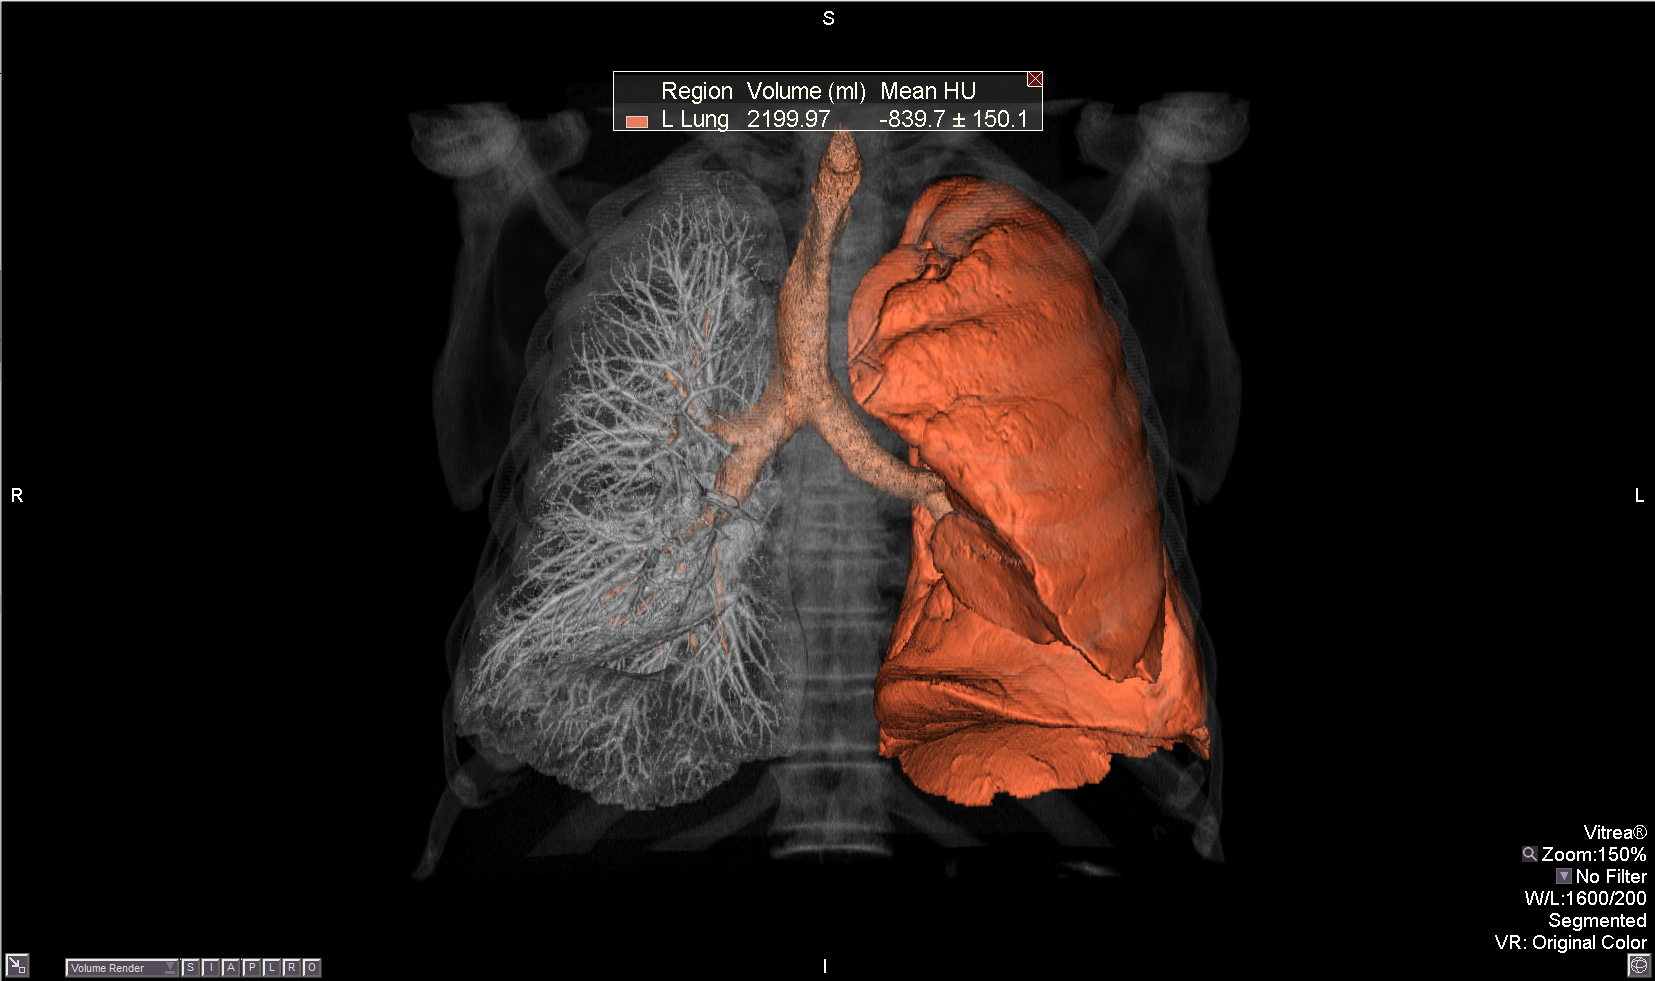 New Hybrid Cad Scheme May Improve Ct Lung Nodule Detection Imaging